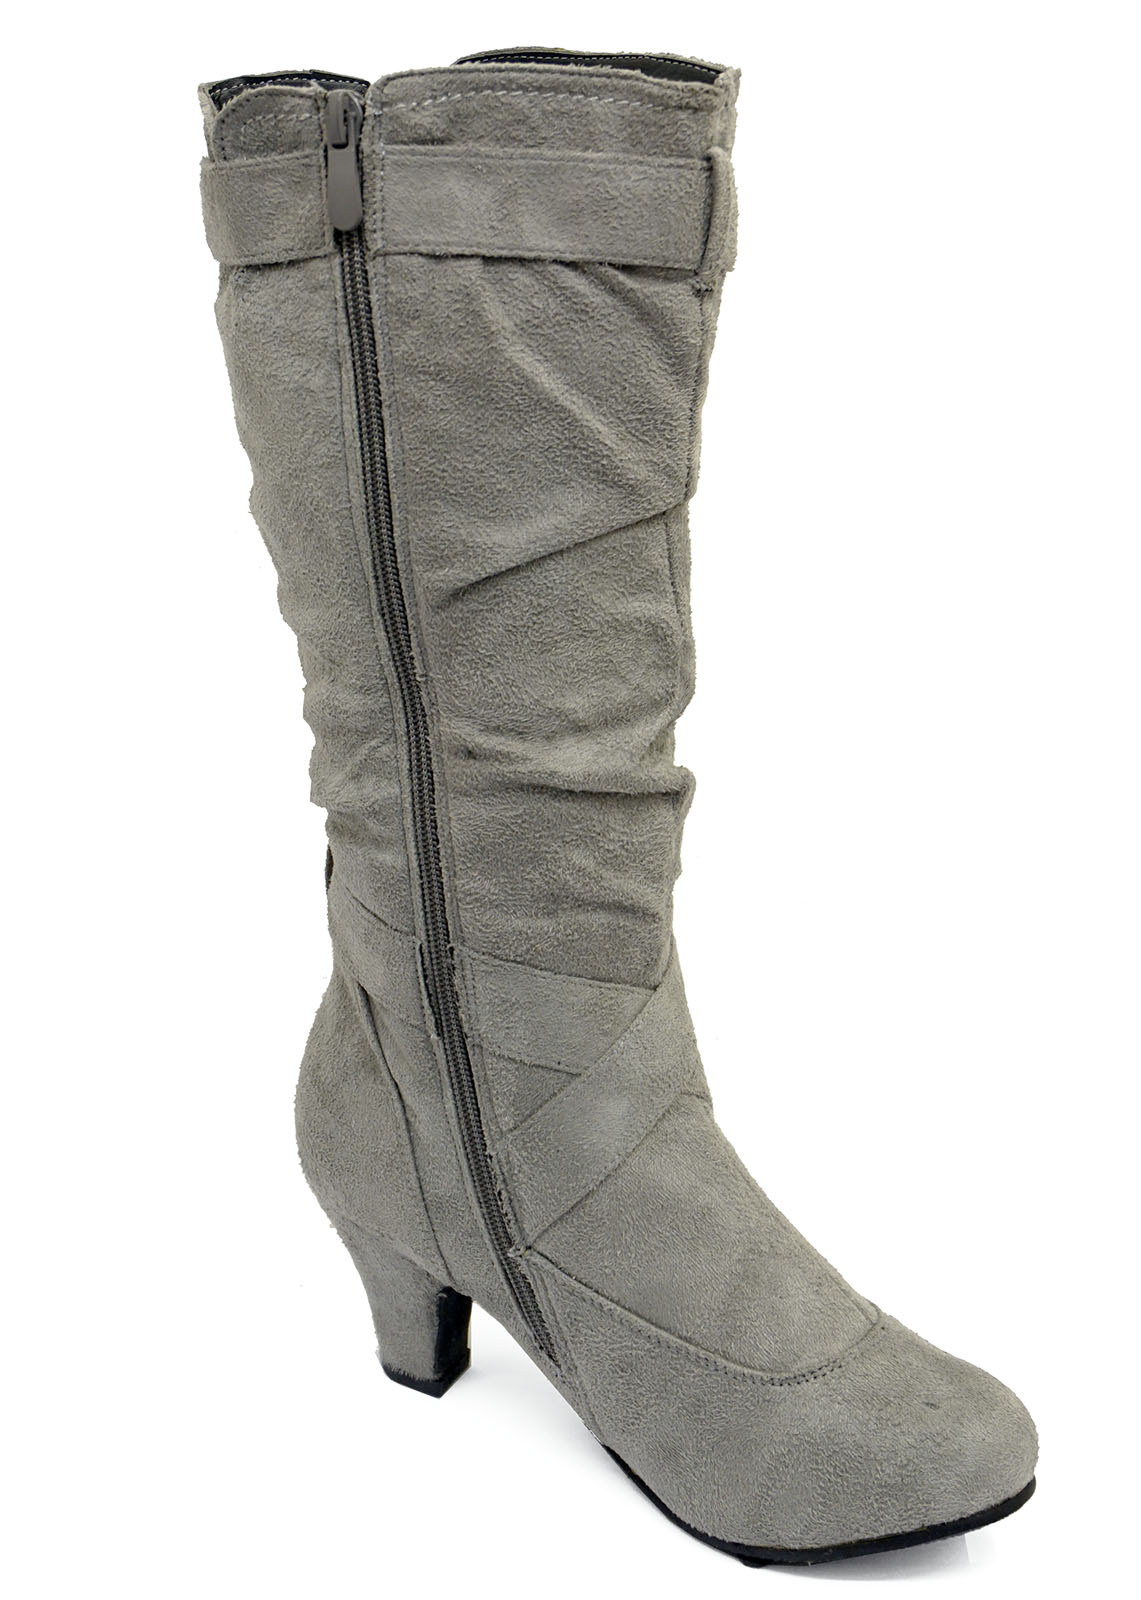 LADIES-GREY-ZIP-UP-BIKER-SLOUCH-RUCHED-TALL-KNEE-CALF-LOW-HEEL-BOOTS-SHOES-4-10 thumbnail 16